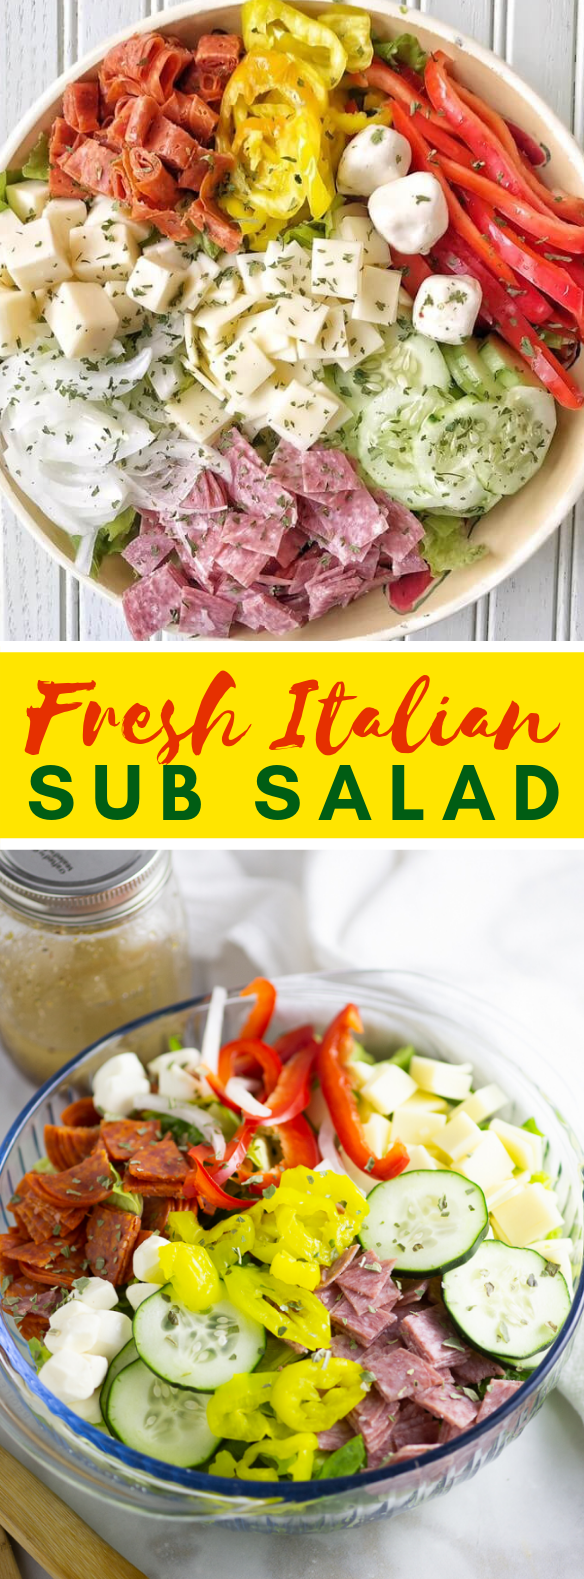 Italian Sub Salad Recipe #vegetarian #summer